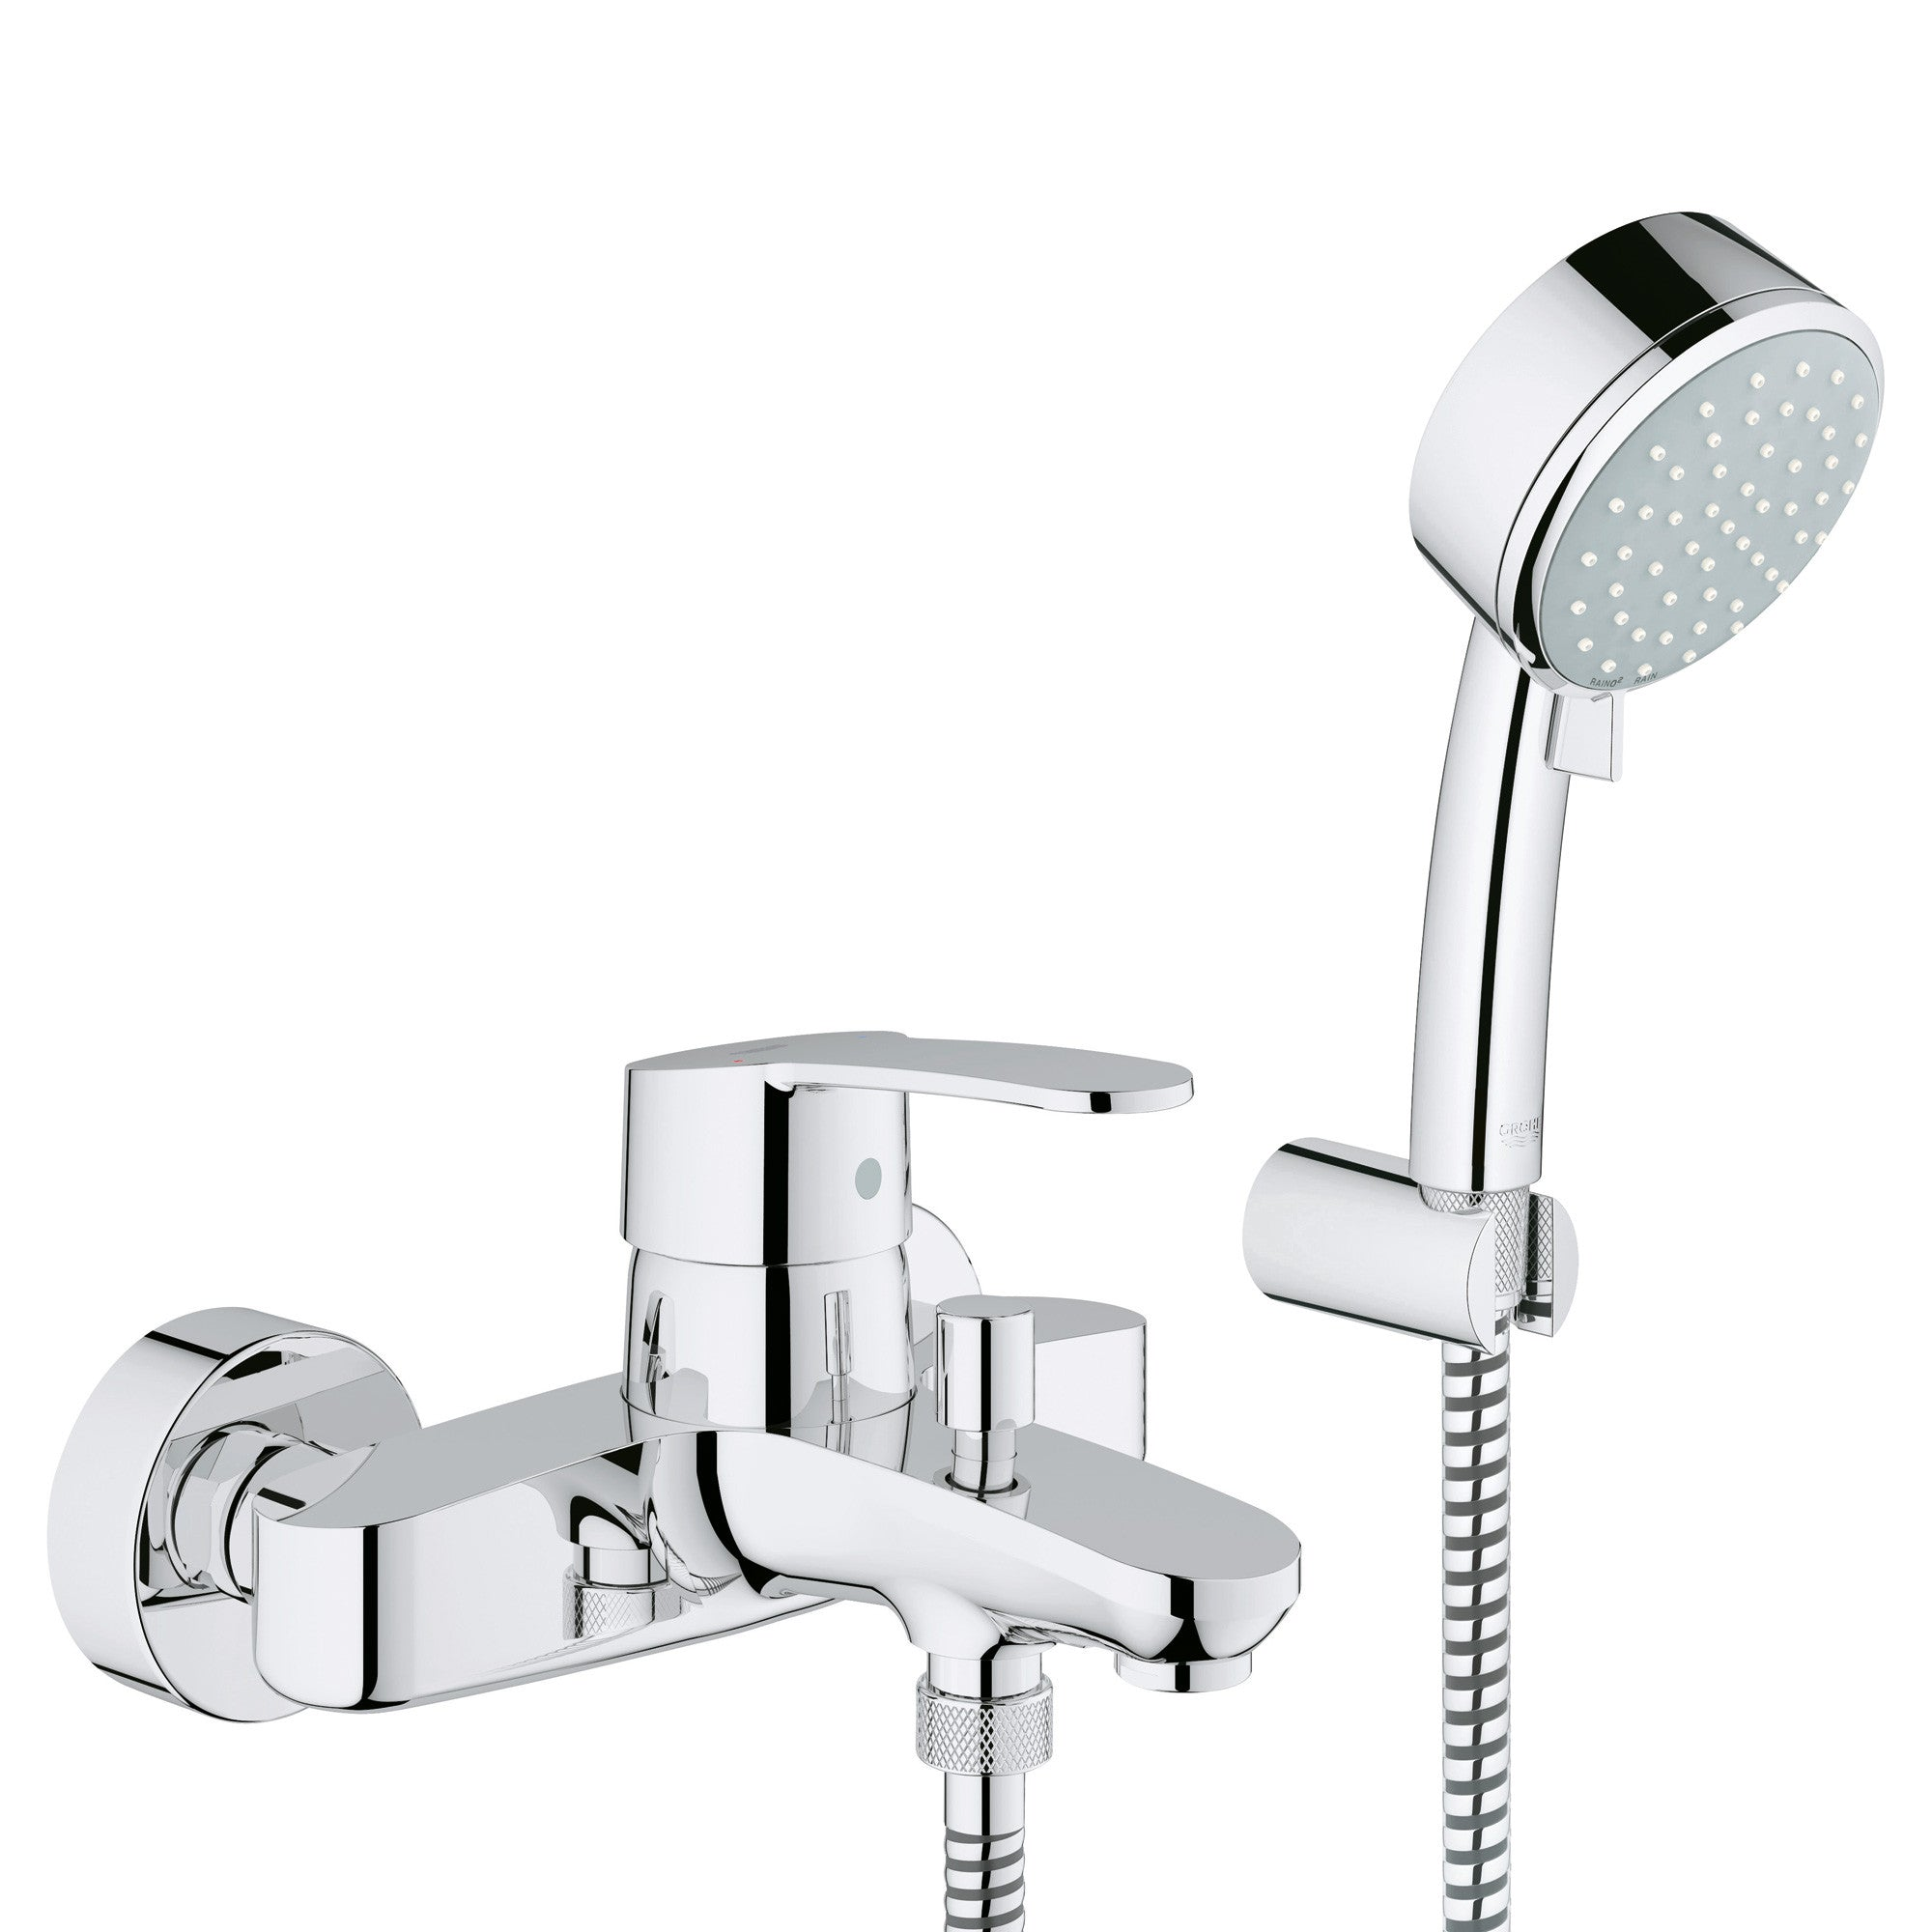 Grohe Europlus Bath Shower Wall Mounted Mixer Tap - grohe - europlus ...